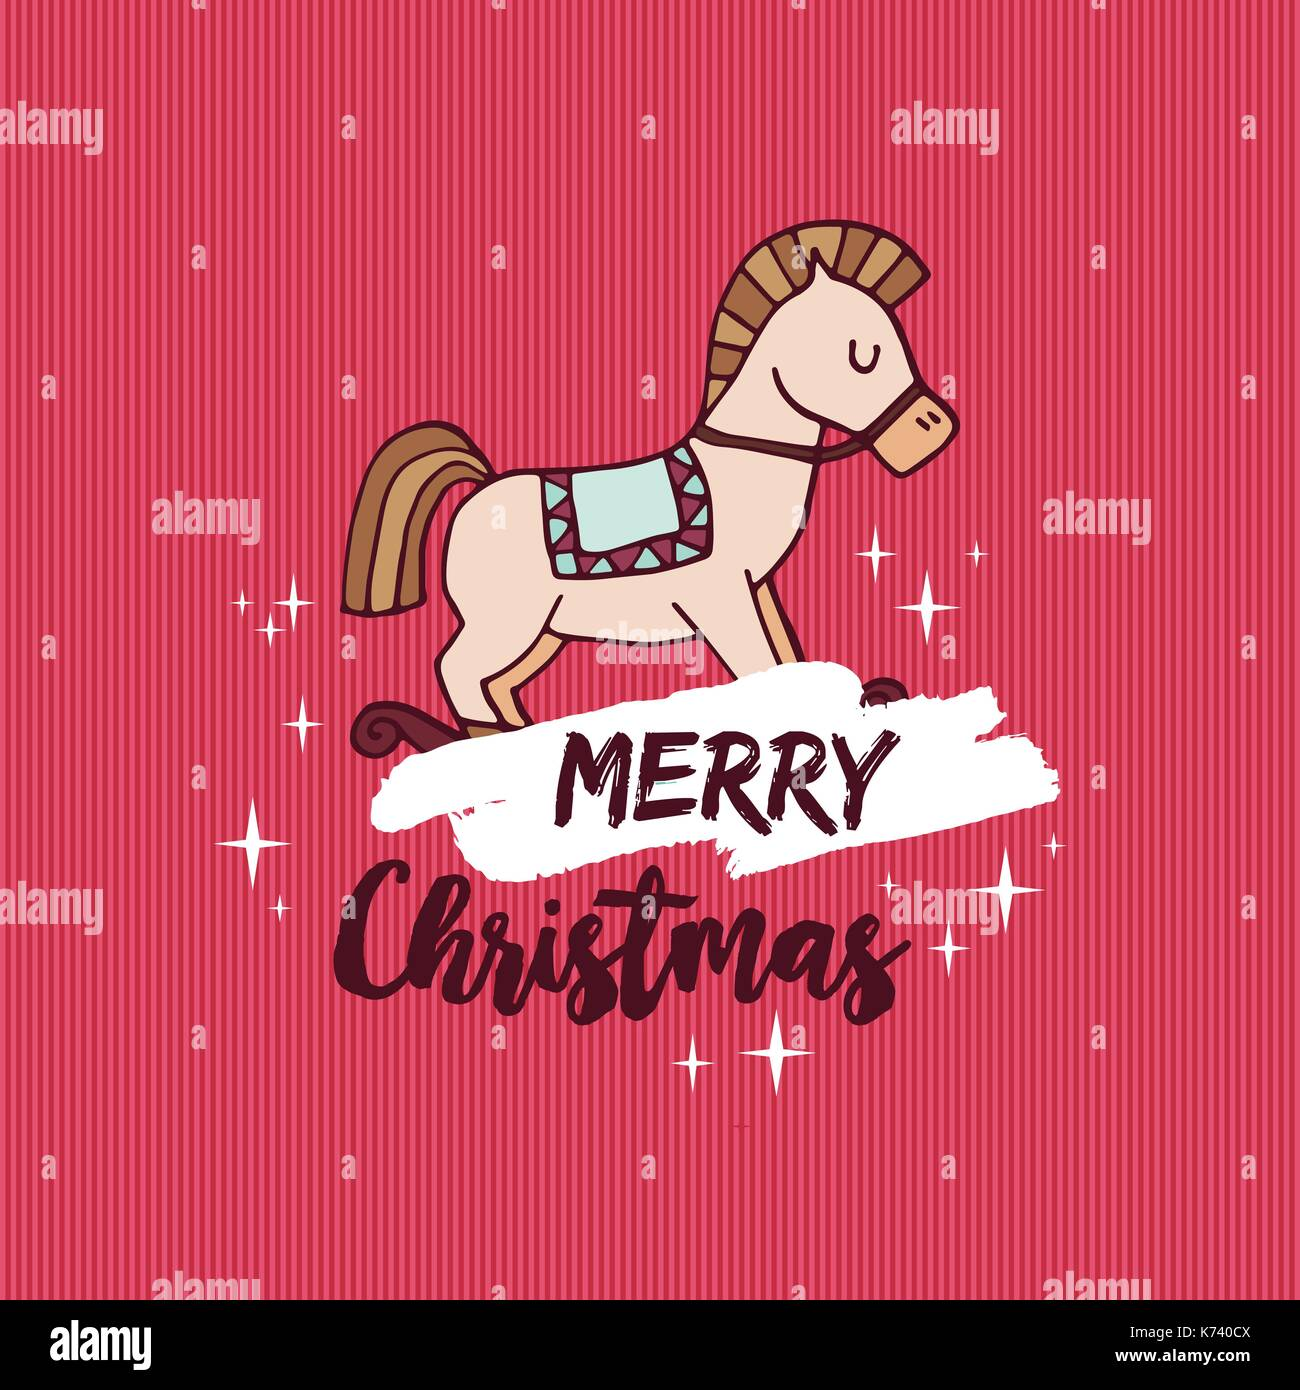 Merry Christmas Red Hand Drawn Greeting Card Cute Rocking Horse Toy Stock Vector Image Art Alamy